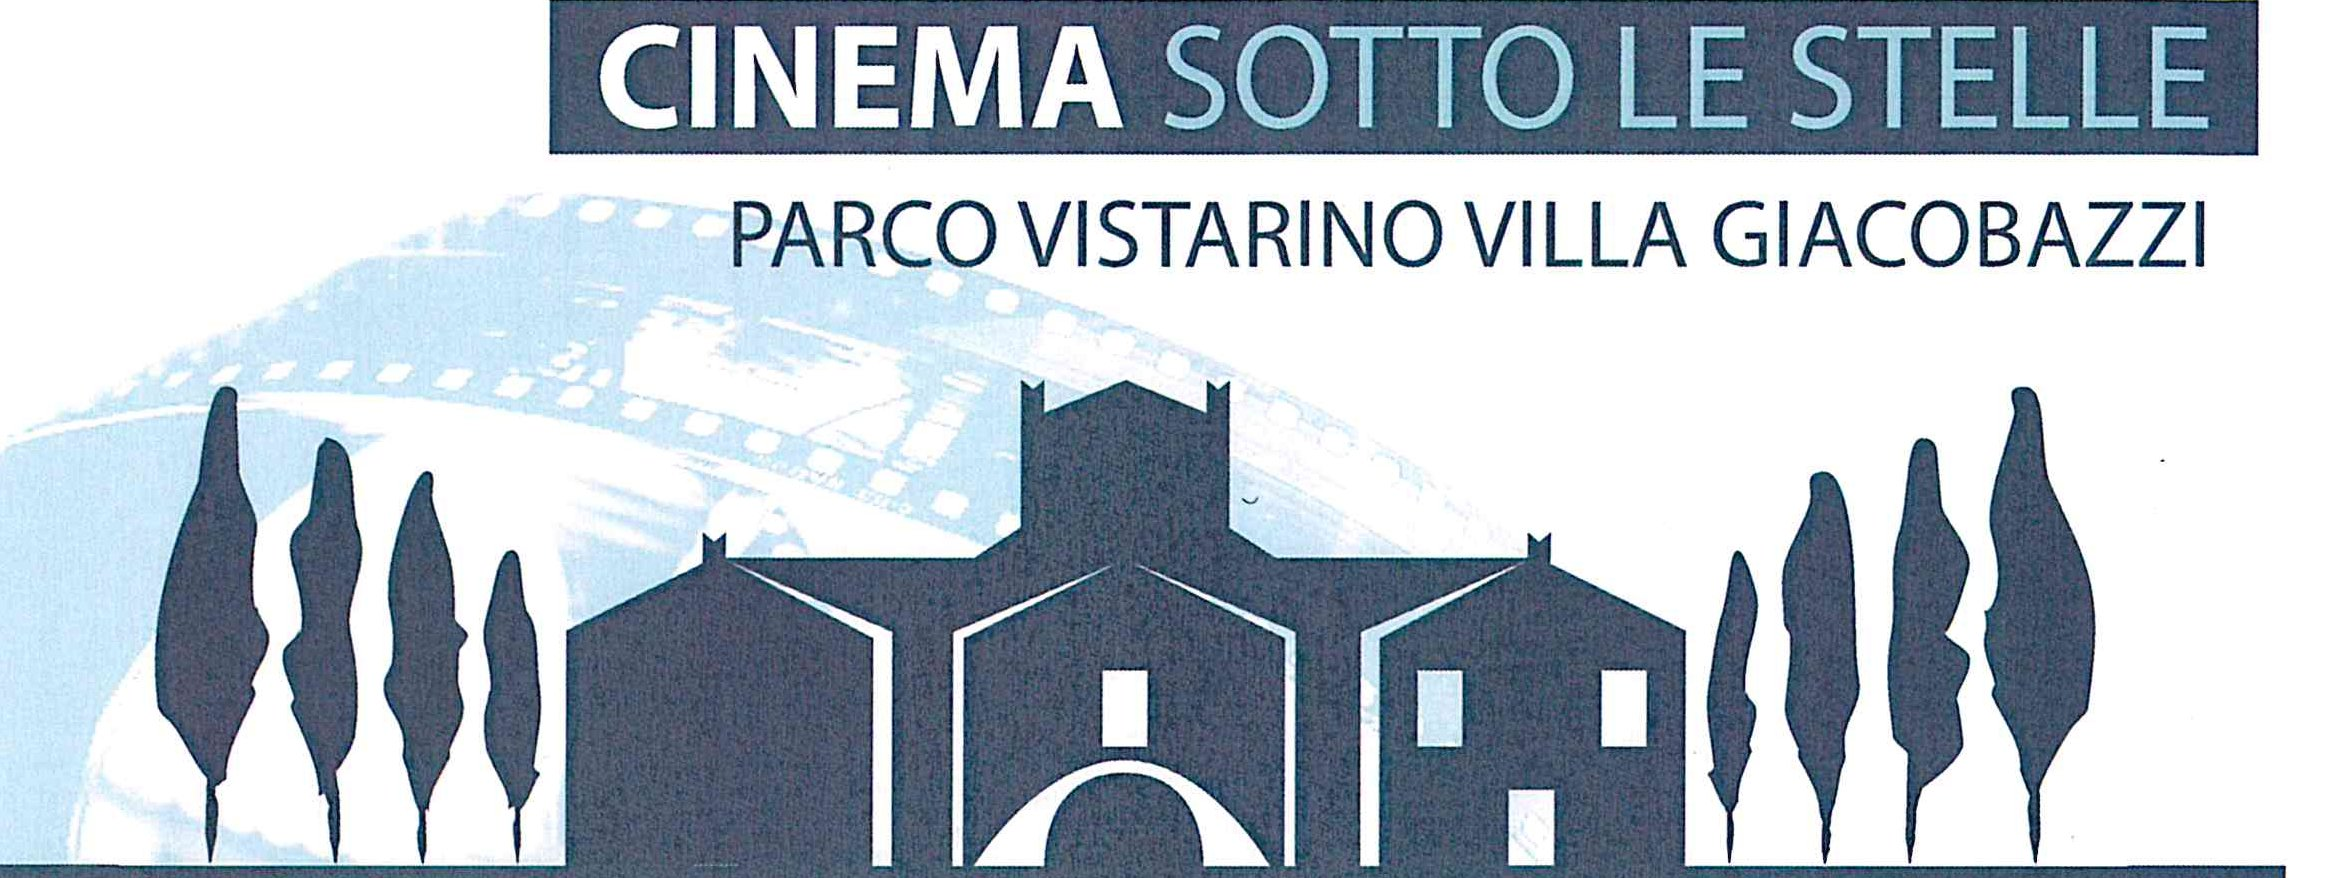 Cinema sotto le stelle: La favorita